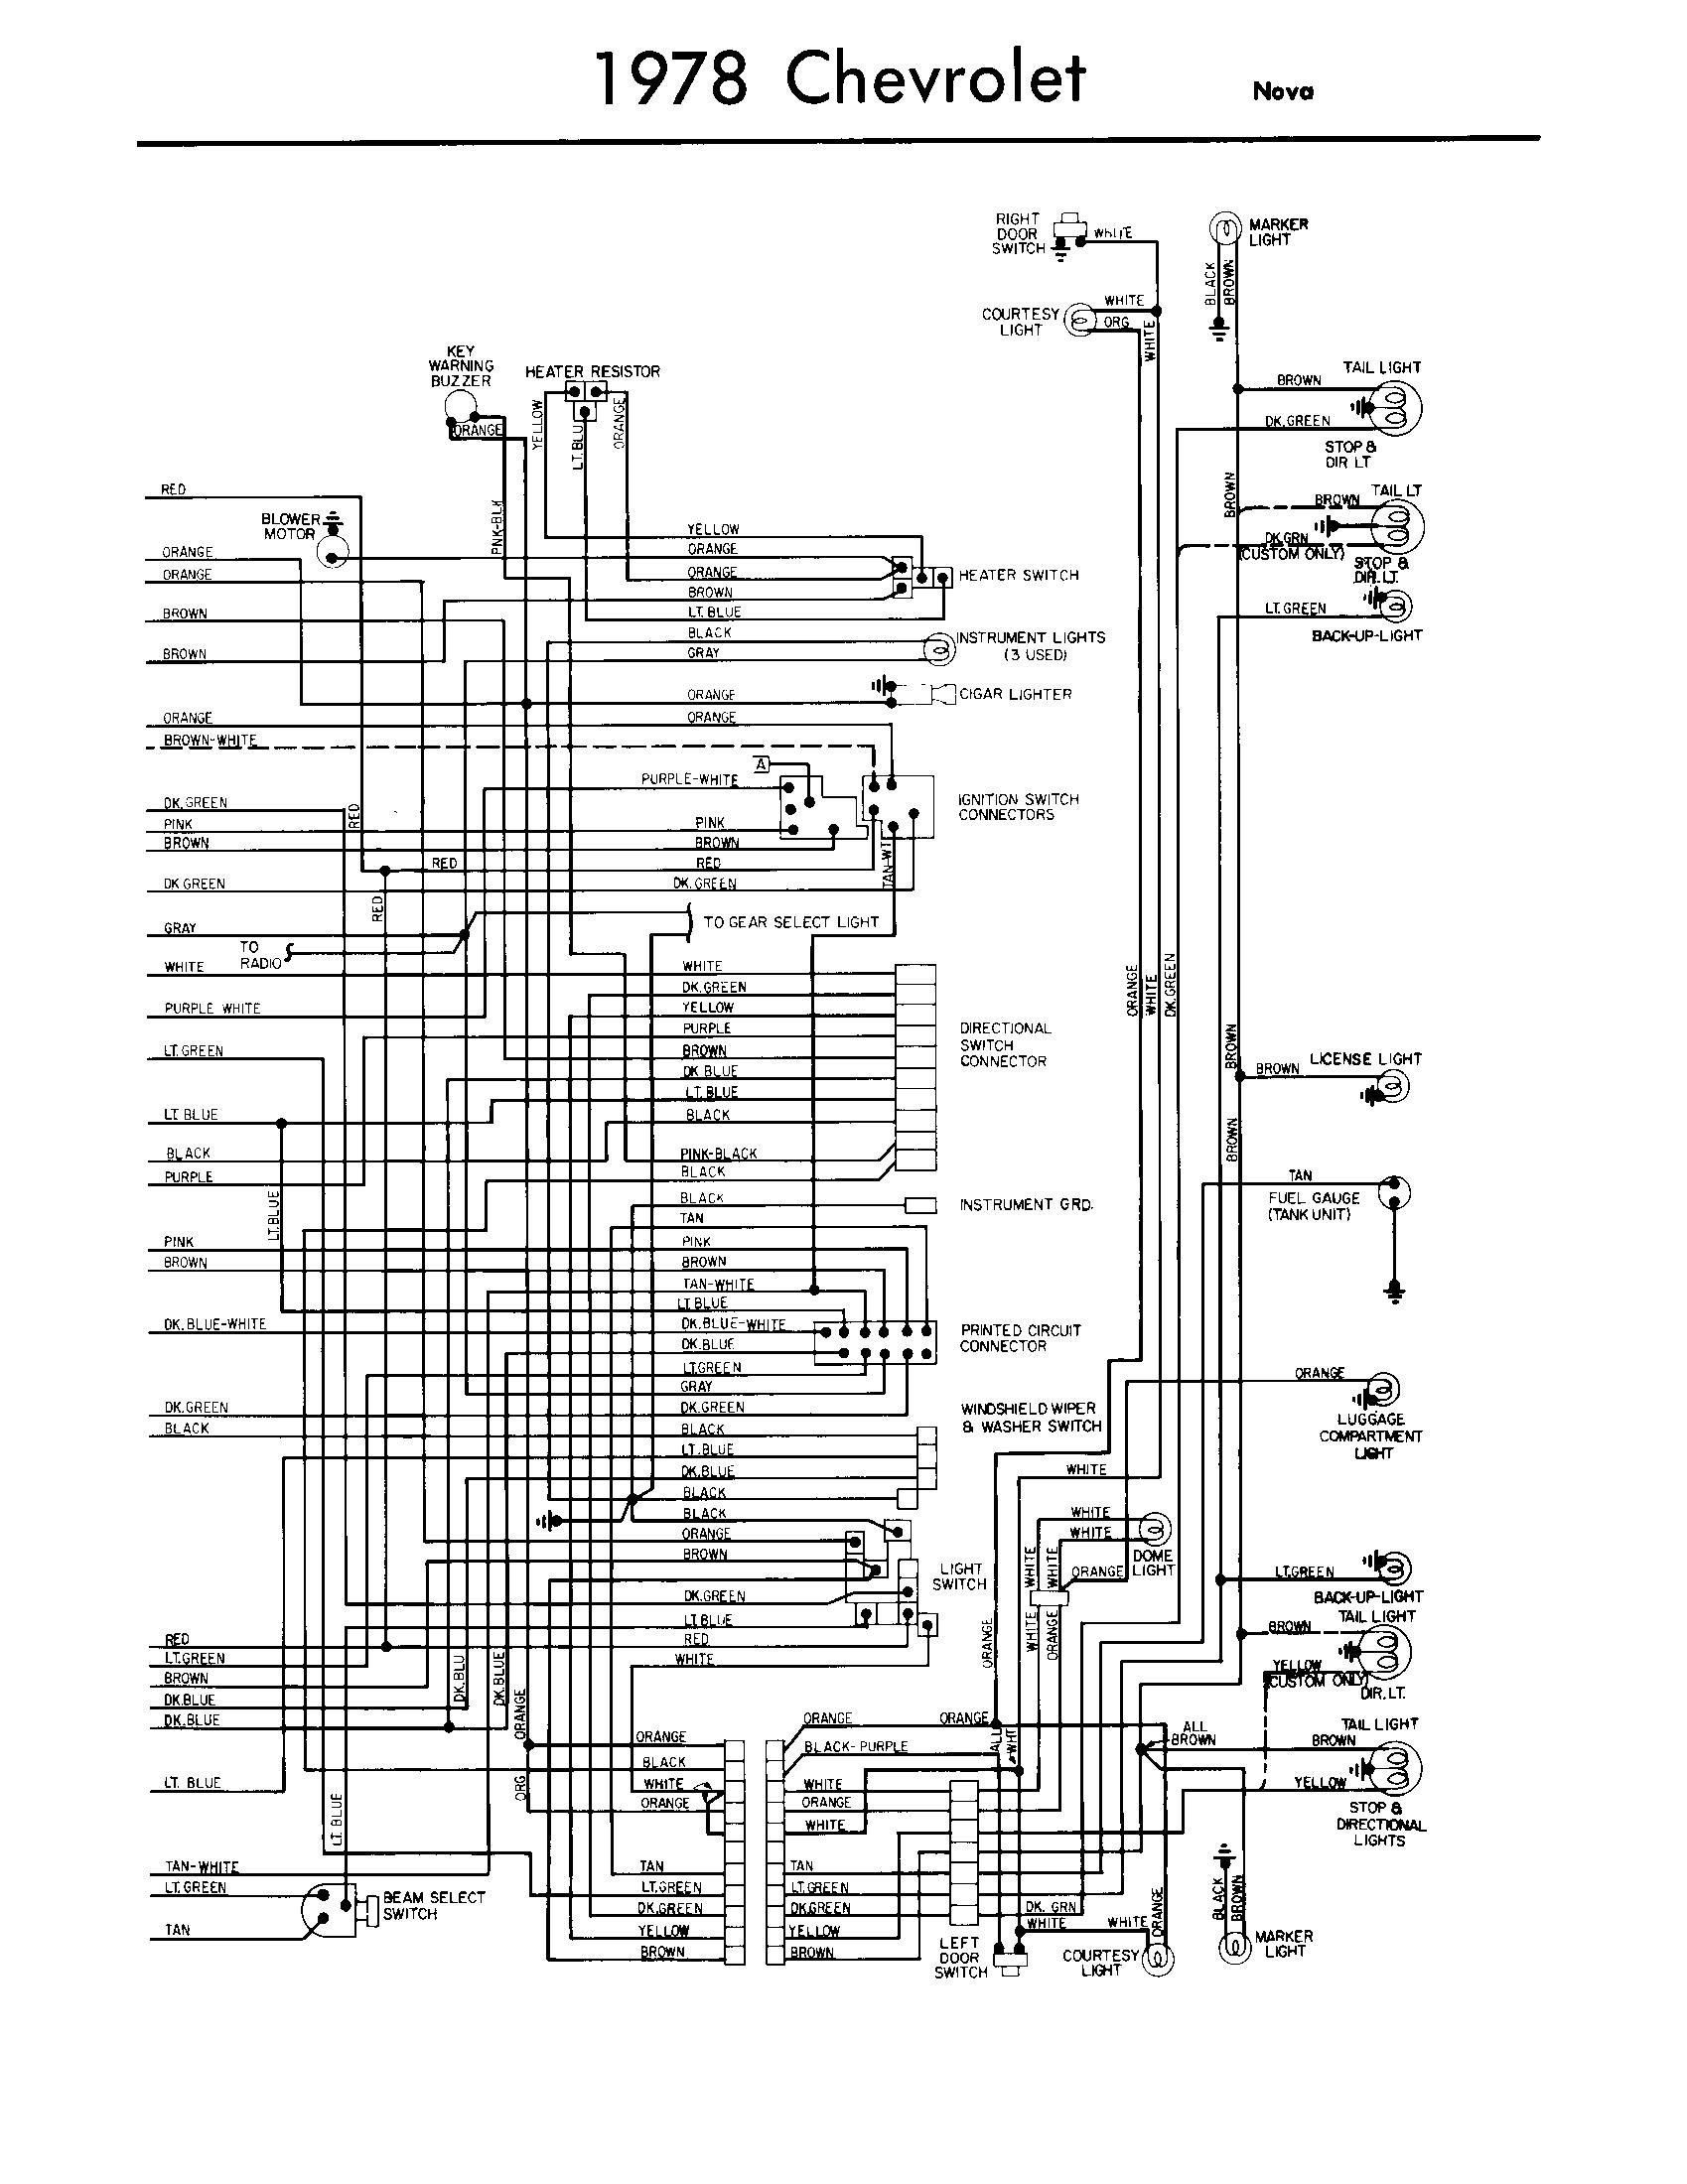 1979 Chevy Corvette Wiring Schematic Php Free Download Mesmerizing 1976 Diagram Chevy Trucks Electrical Wiring Diagram Chevy